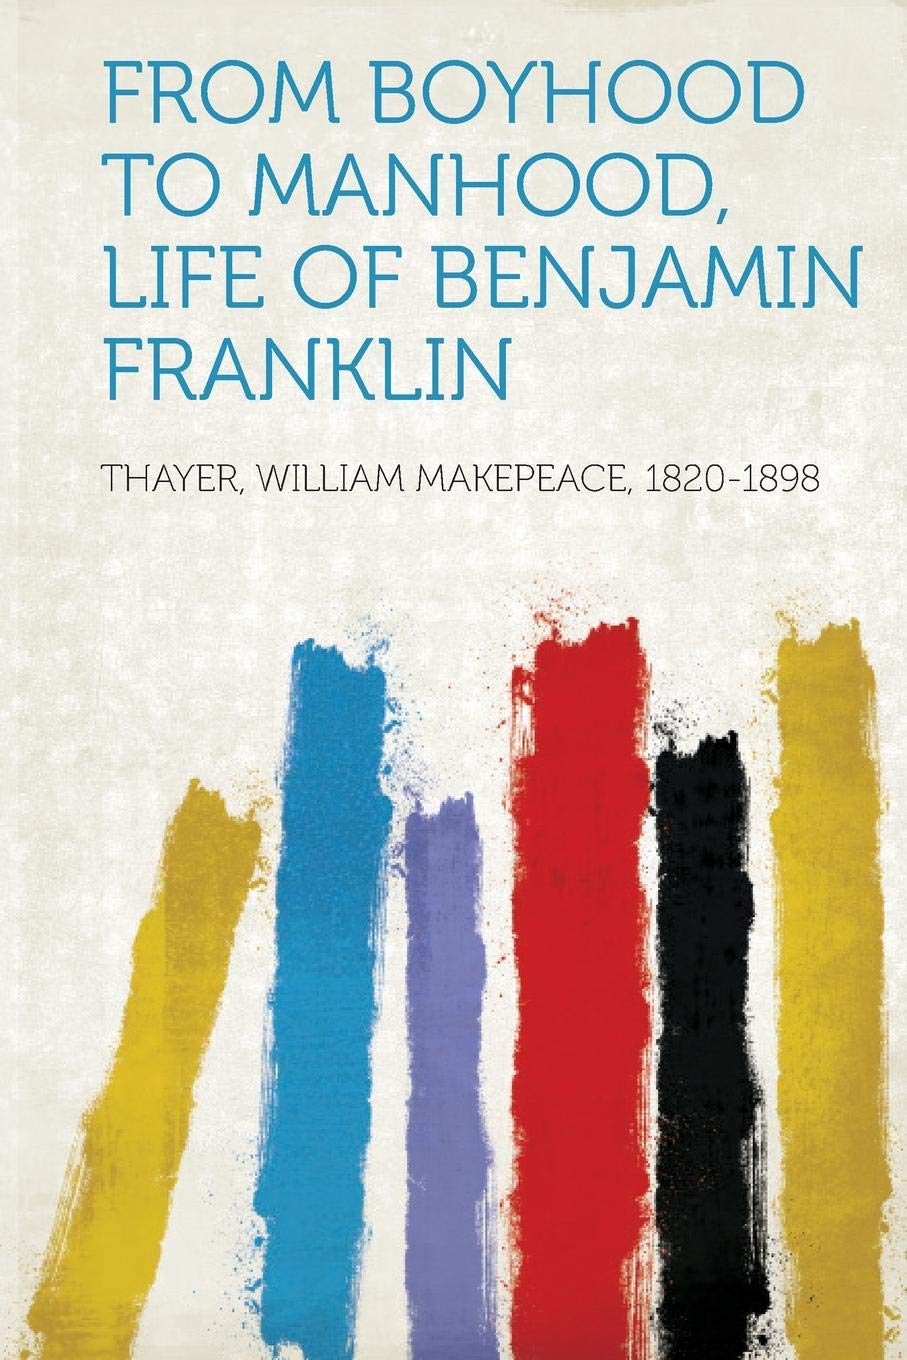 From Boyhood to Manhood Life of Benjamin Franklin